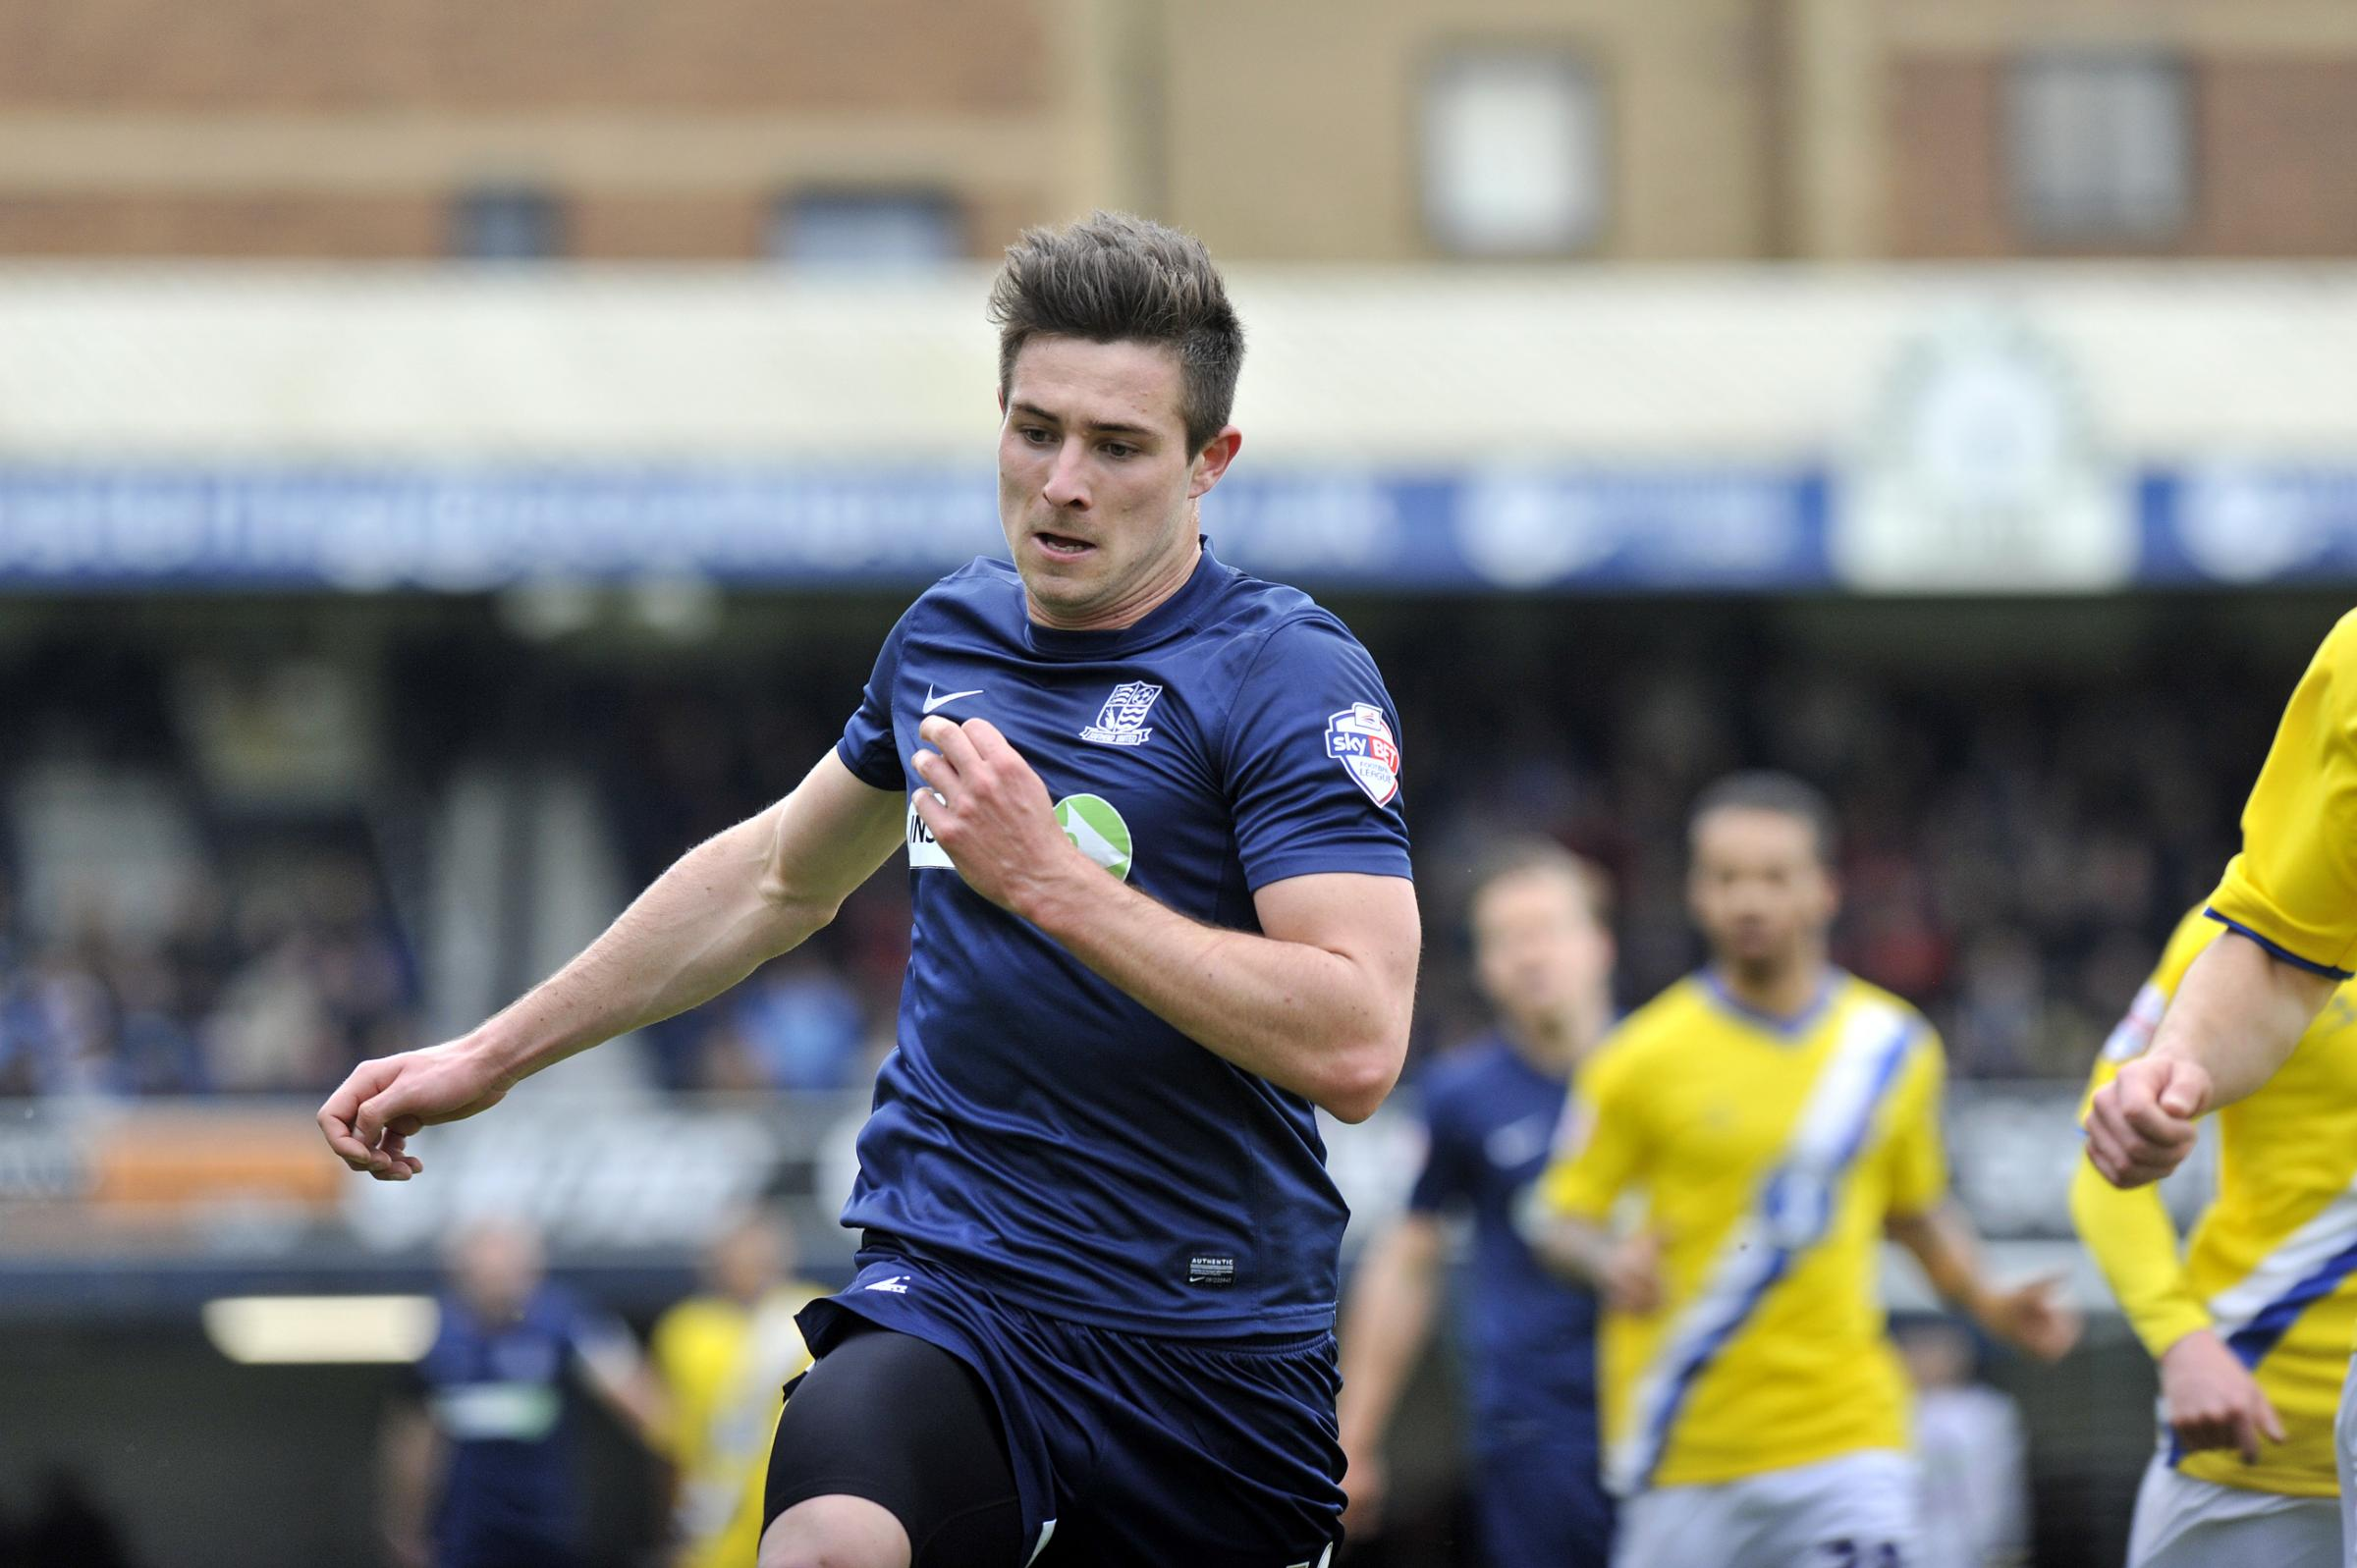 Ryan Leonard - urging Southend United not to dwell on their defeat to AFC Wimbledon